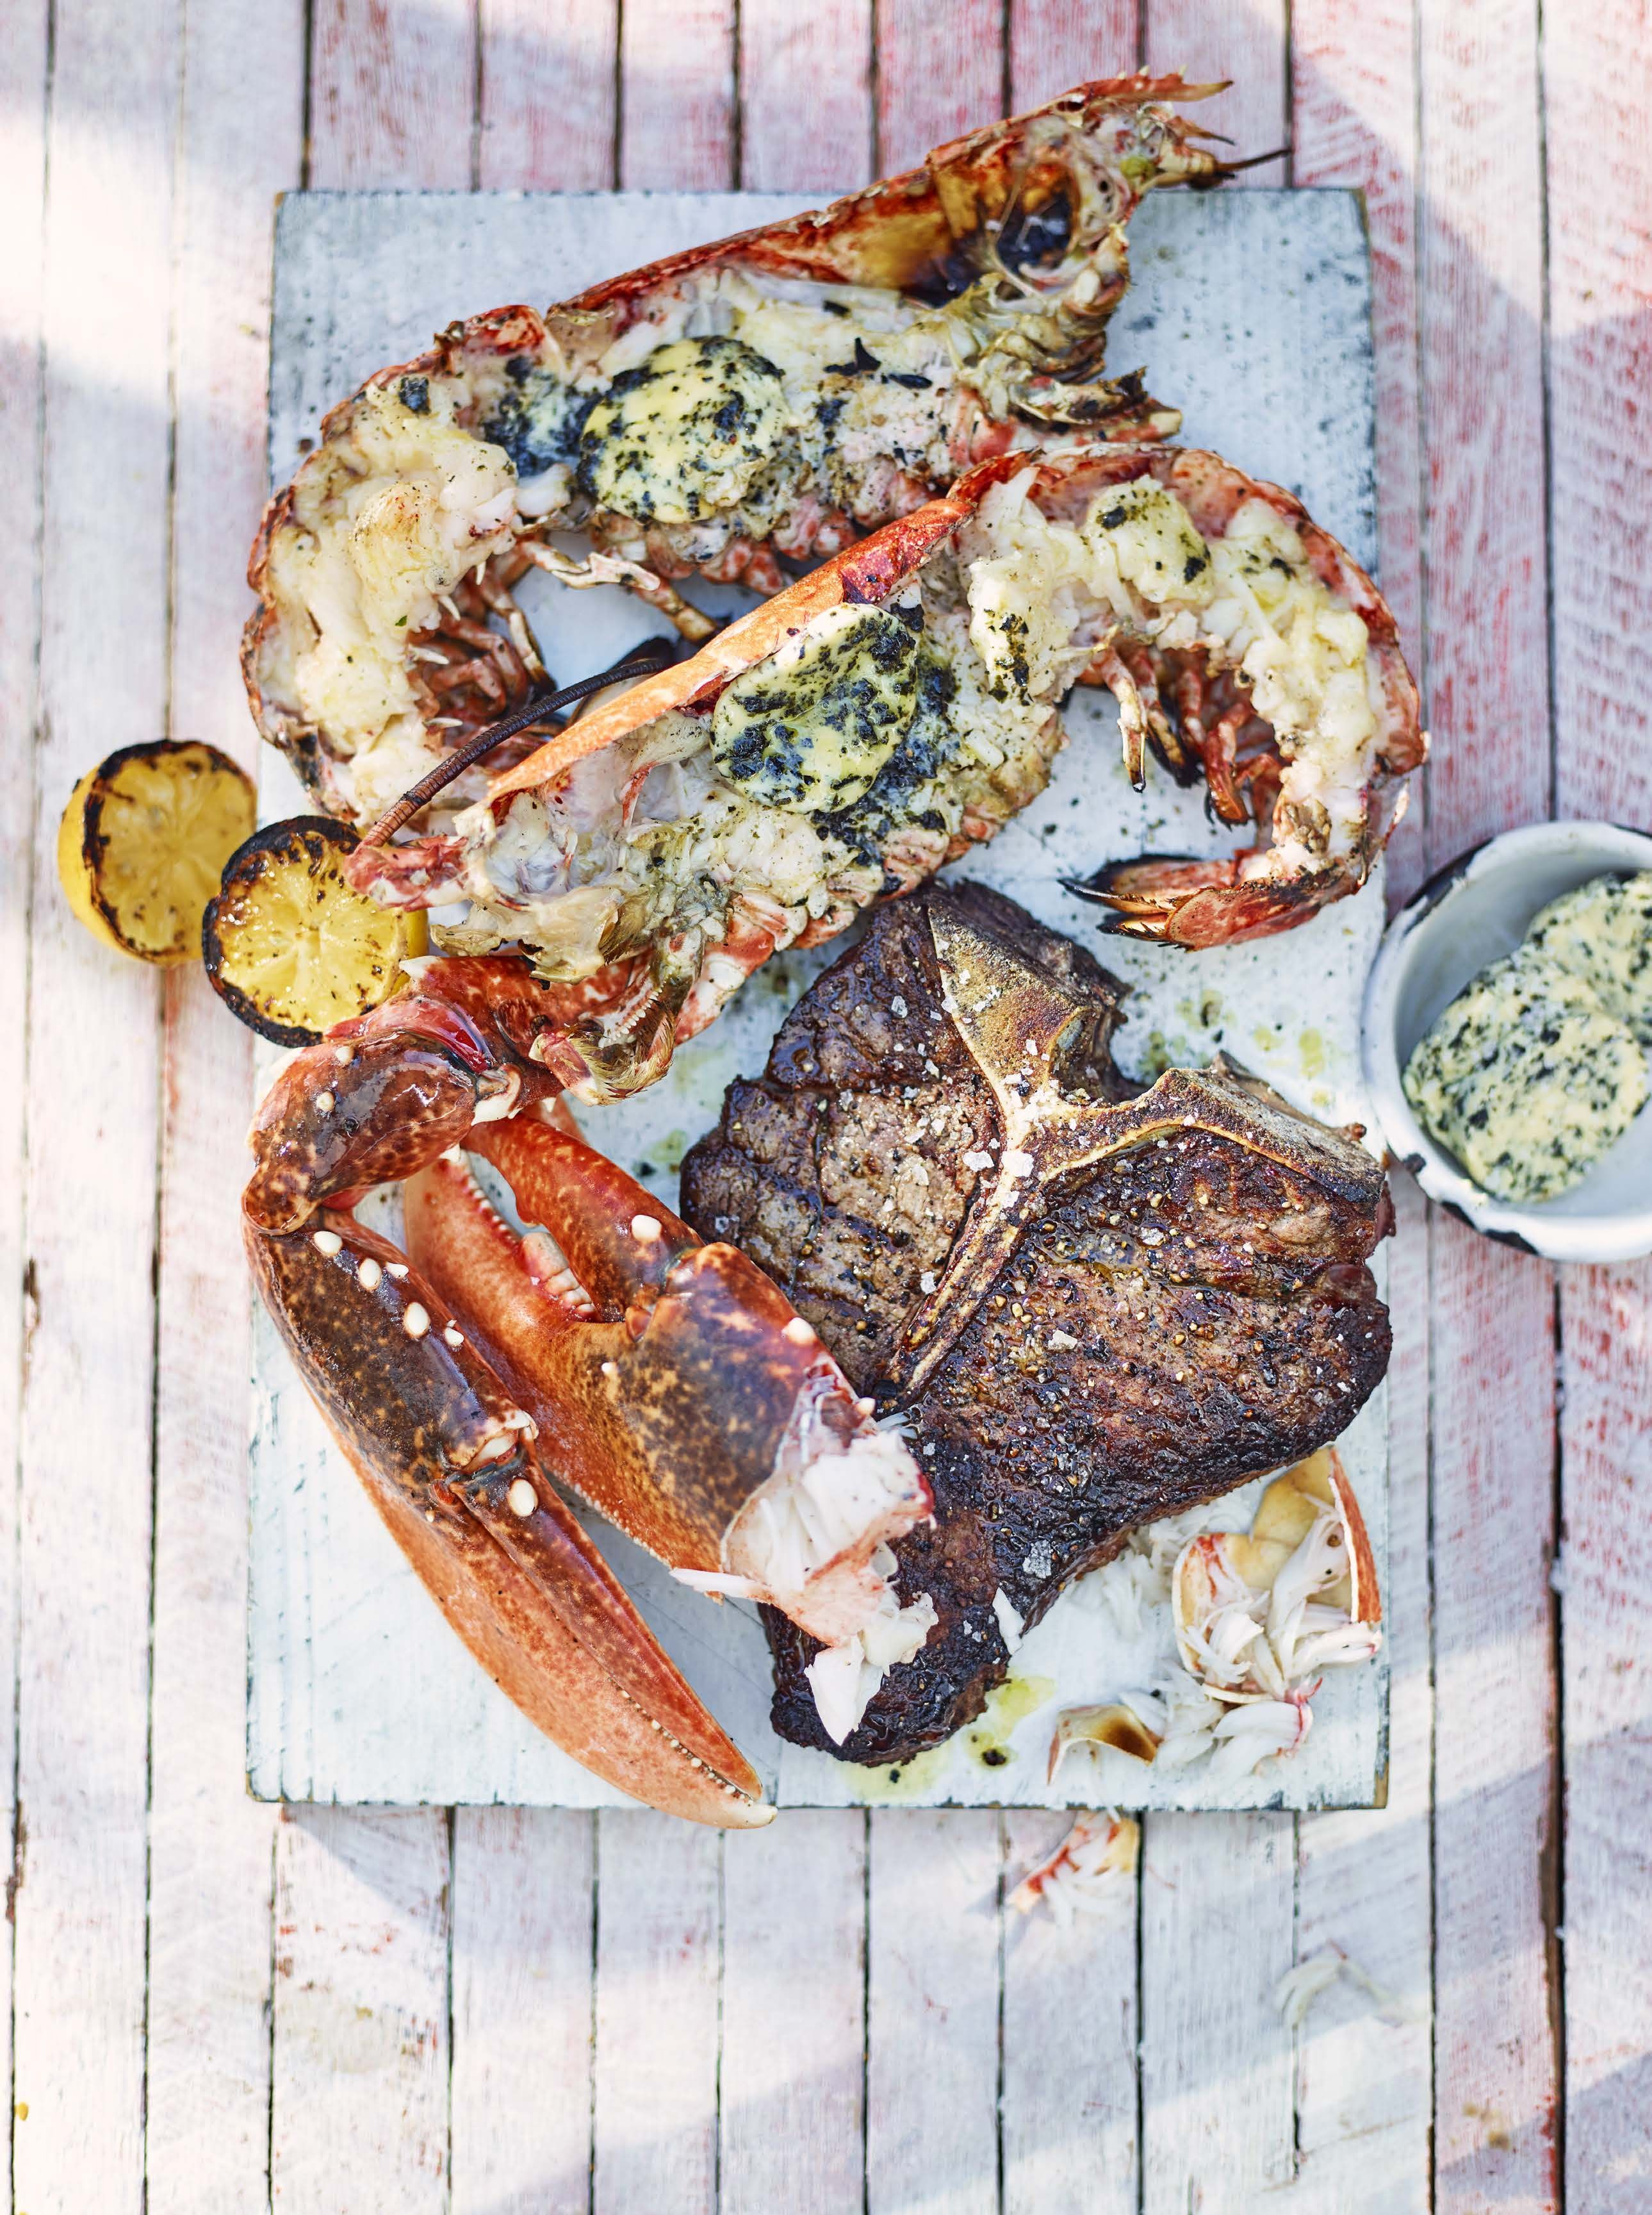 Bbc good food me 2018 march incredible edible feast your eyes bbc good food me recipes for summer recipes for spring springtime recipes forumfinder Choice Image